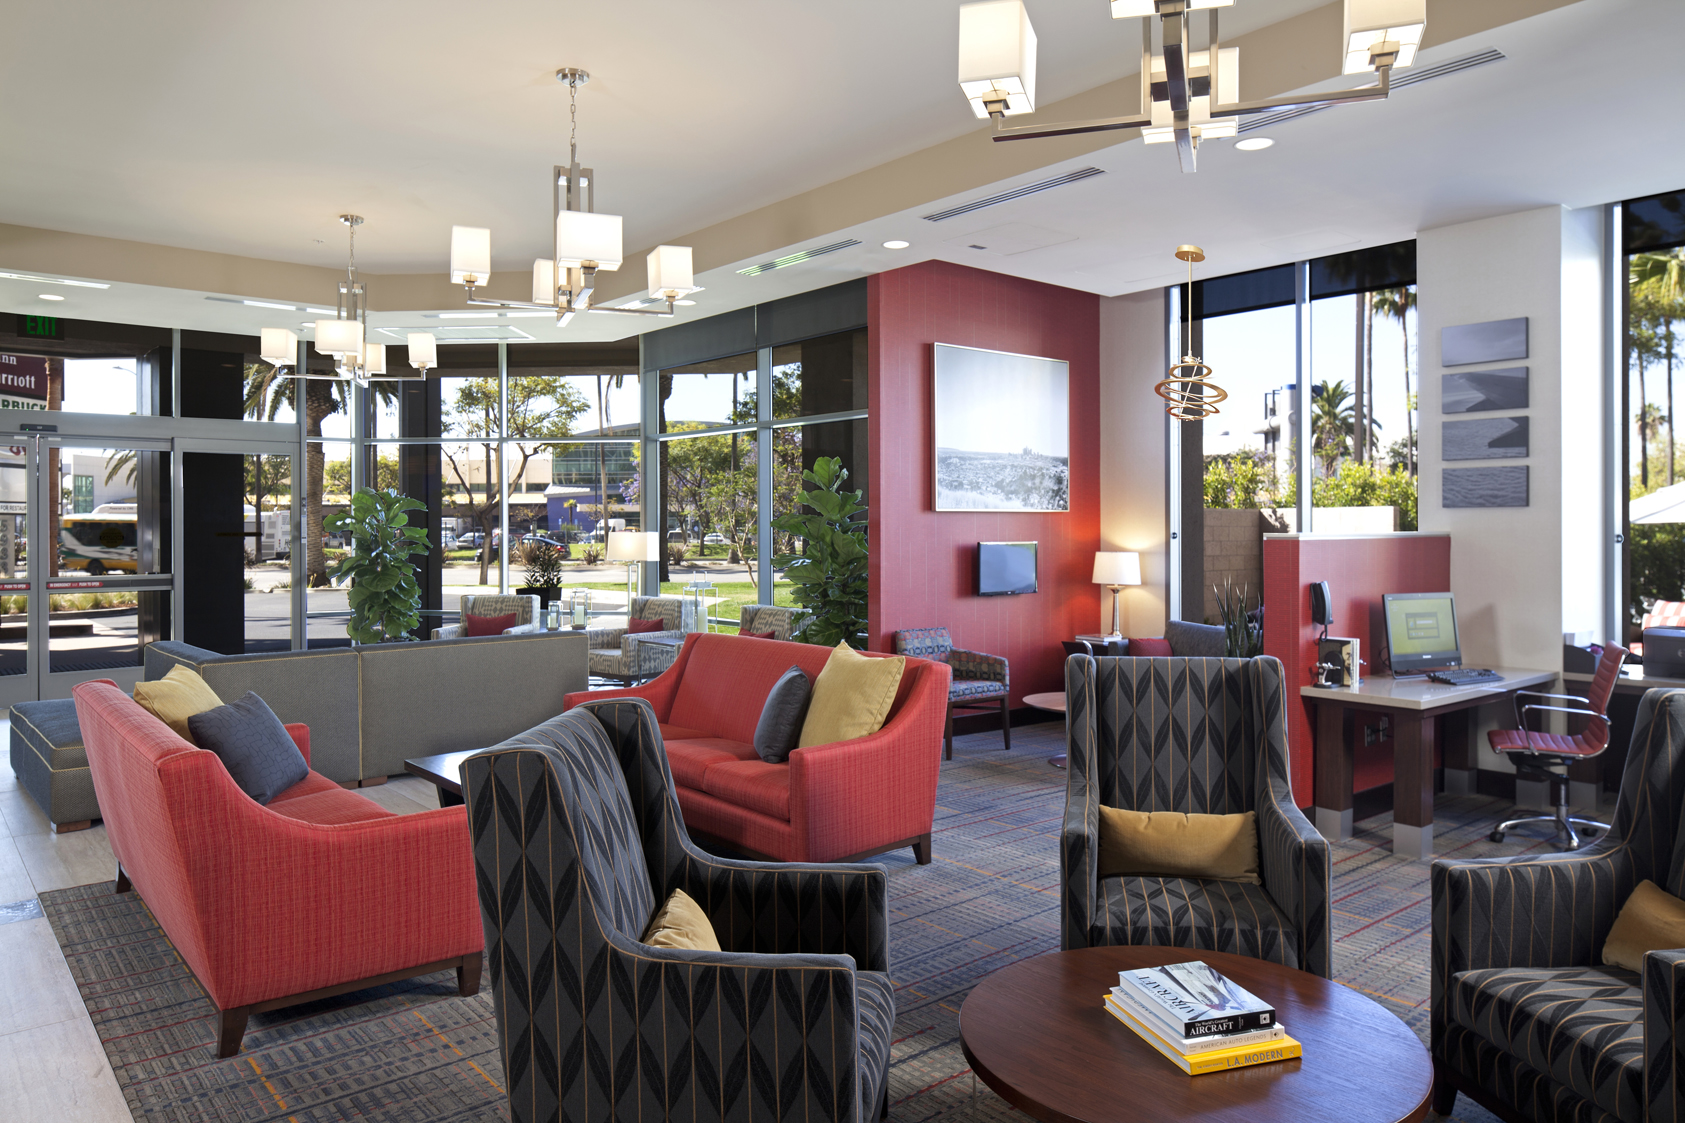 https://www.hotelsbyday.com/_data/default-hotel_image/0/2250/29-laxax-lobby.jpg